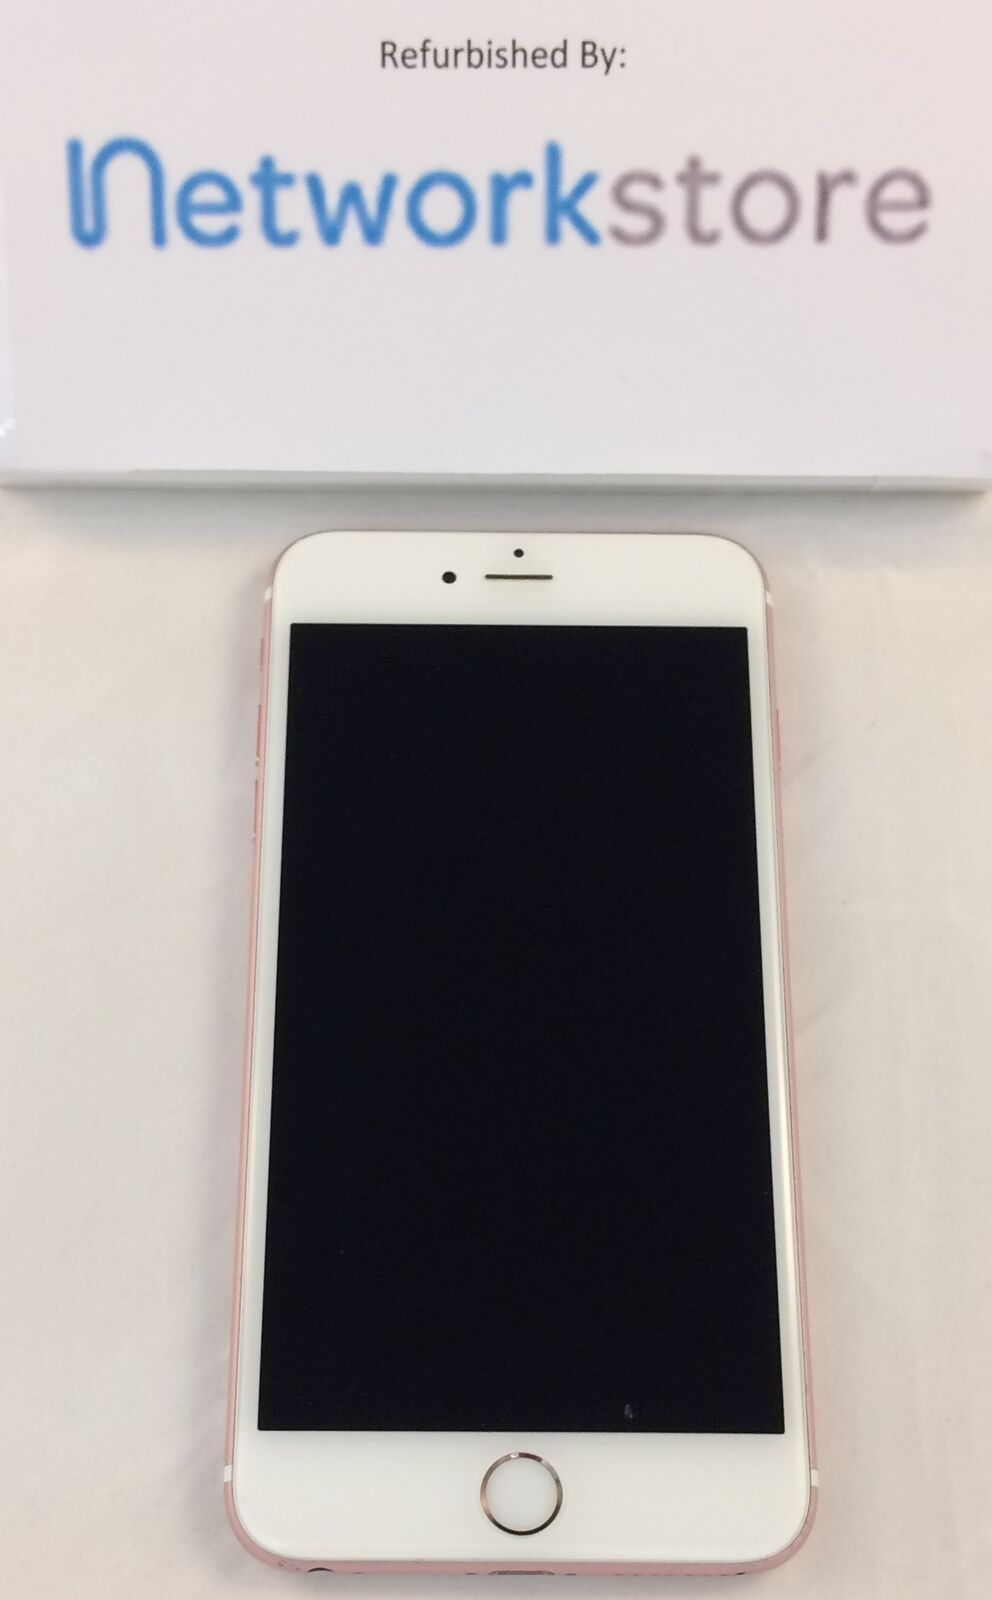 Apple Iphone 6s Plus 16gb Rose Gold Sprint A1687 Cdma Gsm 6 64gb Refrubish Free Tempered Glass Ebay